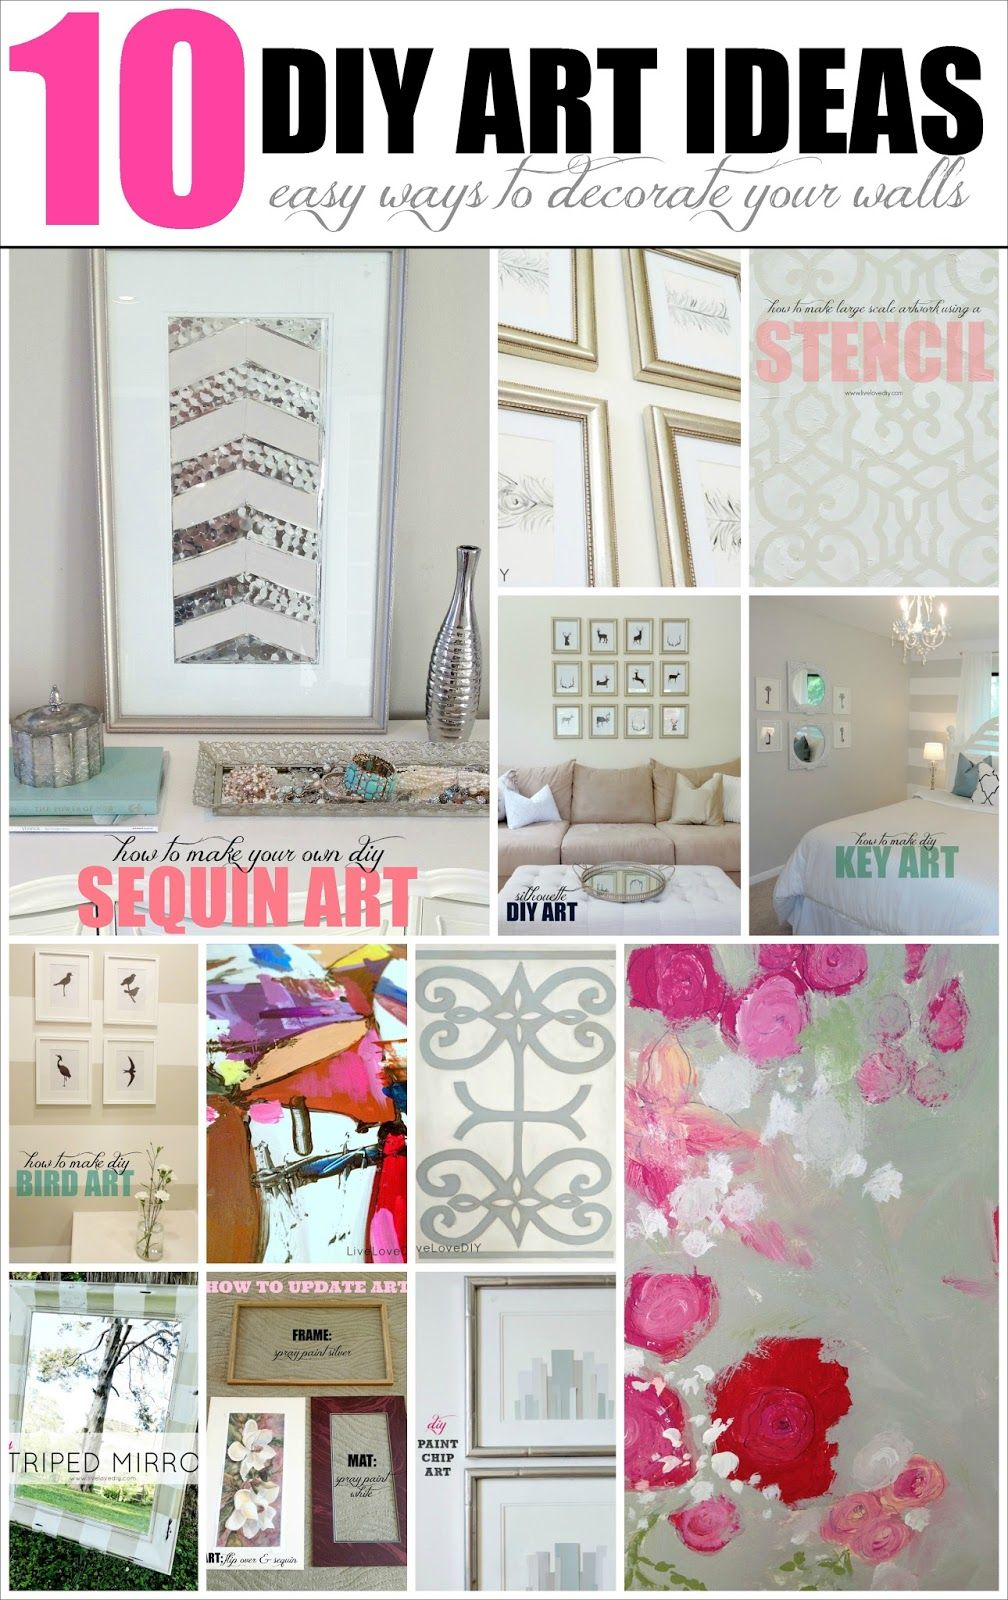 1000 images about diy organizasion and room decor on Pinterest. Easy Room Ideas